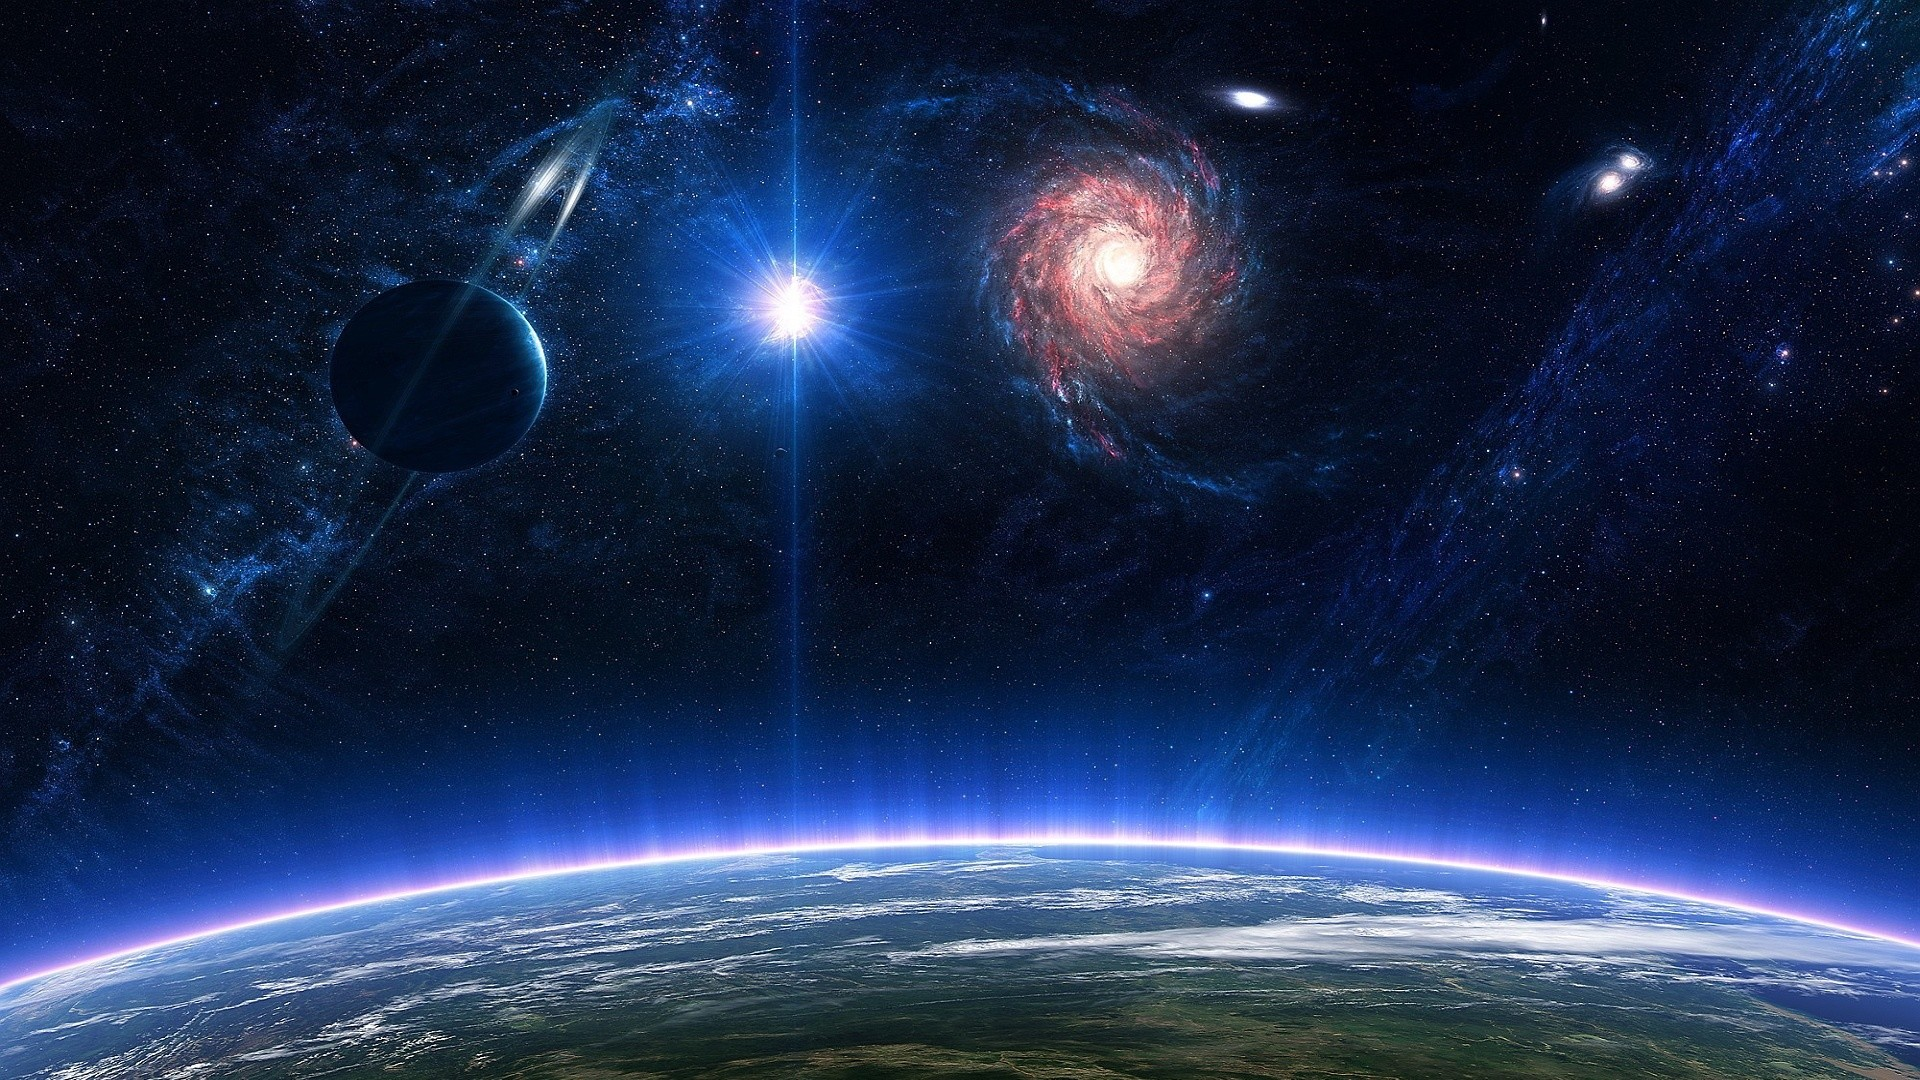 Earth from space wallpaper 1920x1080 74 images - Space backgrounds 1920x1080 ...